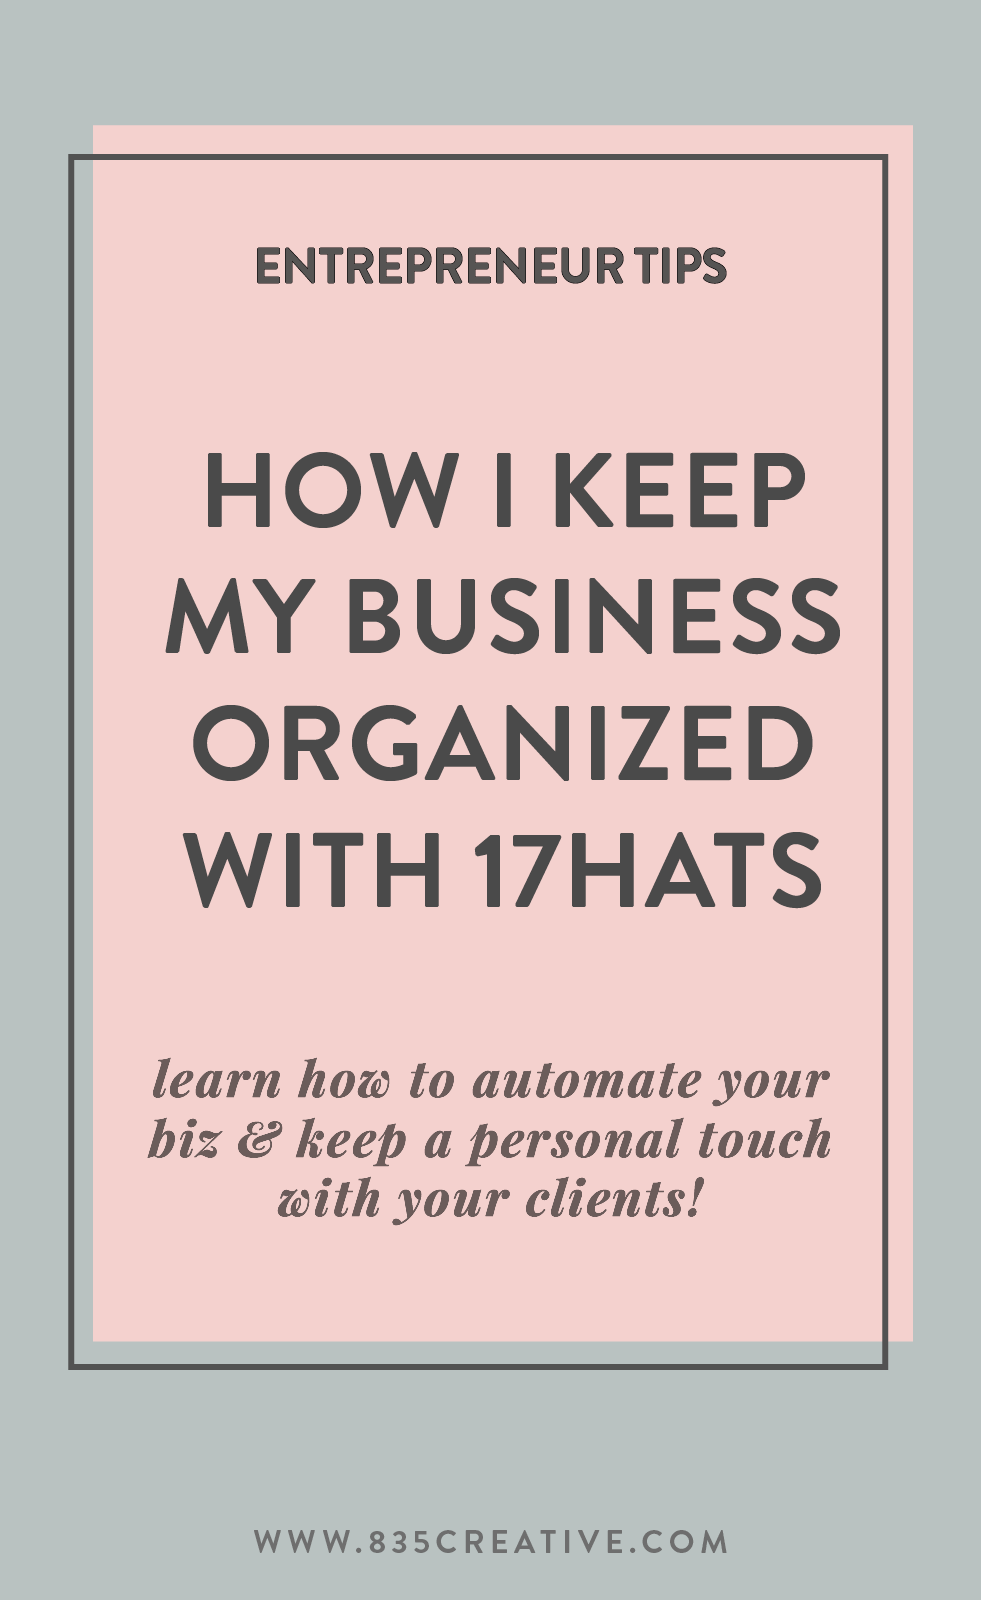 How I keep my business organized using 17Hats